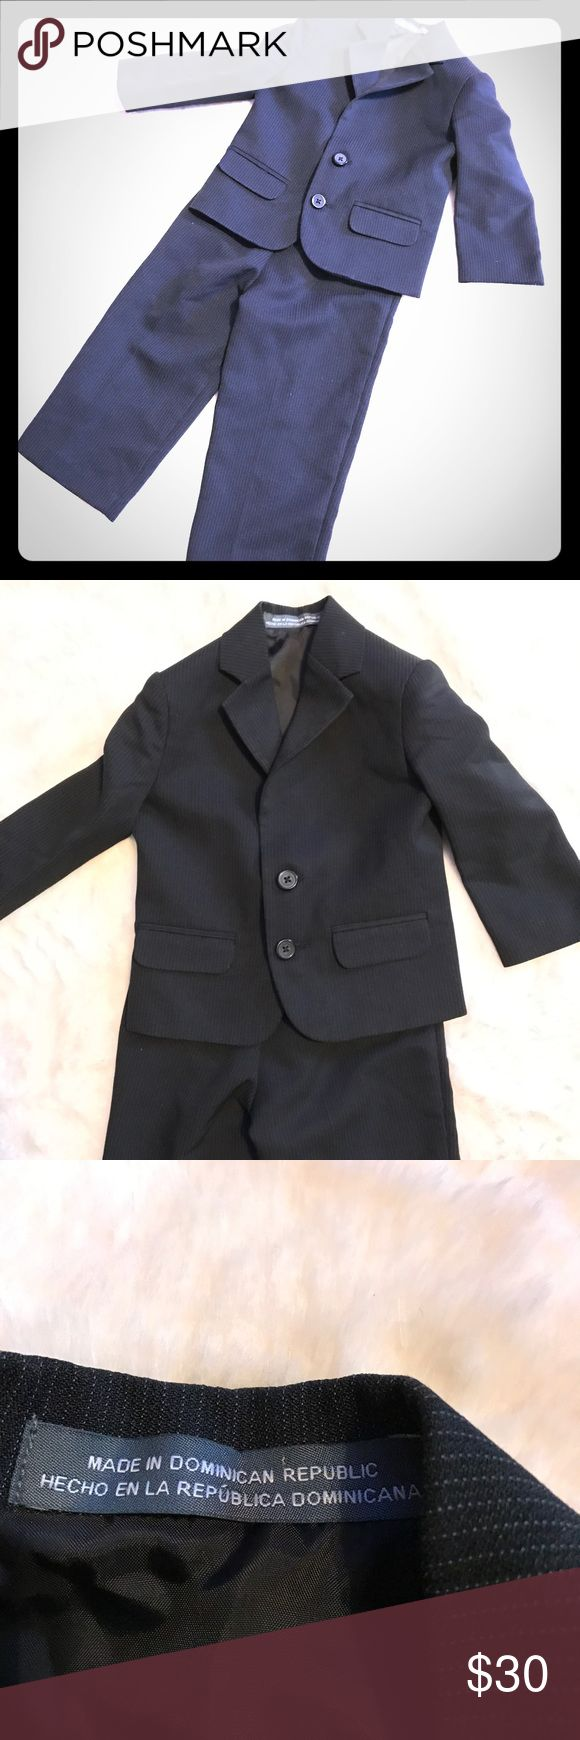 """Perry Ellis 2 pc 2T boy dress church wedding suit Black in color with the faintest of white pinstripe.  EUC no signs of wear but we did use/dry clean for a wedding. Size 2T elastic waist on pants 2 button closure.  Smoke free dog friendly  Pants: 19.5"""" length 8.5""""-11"""" stretched or even possibly more.  Coat: 16"""" length, 12"""" arm pit to pit, 7.5"""" sleeve length from pit to cuff.   Smoke free dog friendly home! Ask me about more 2T items to take advantage of the $6 shipping!! Perry Ellis Matching…"""